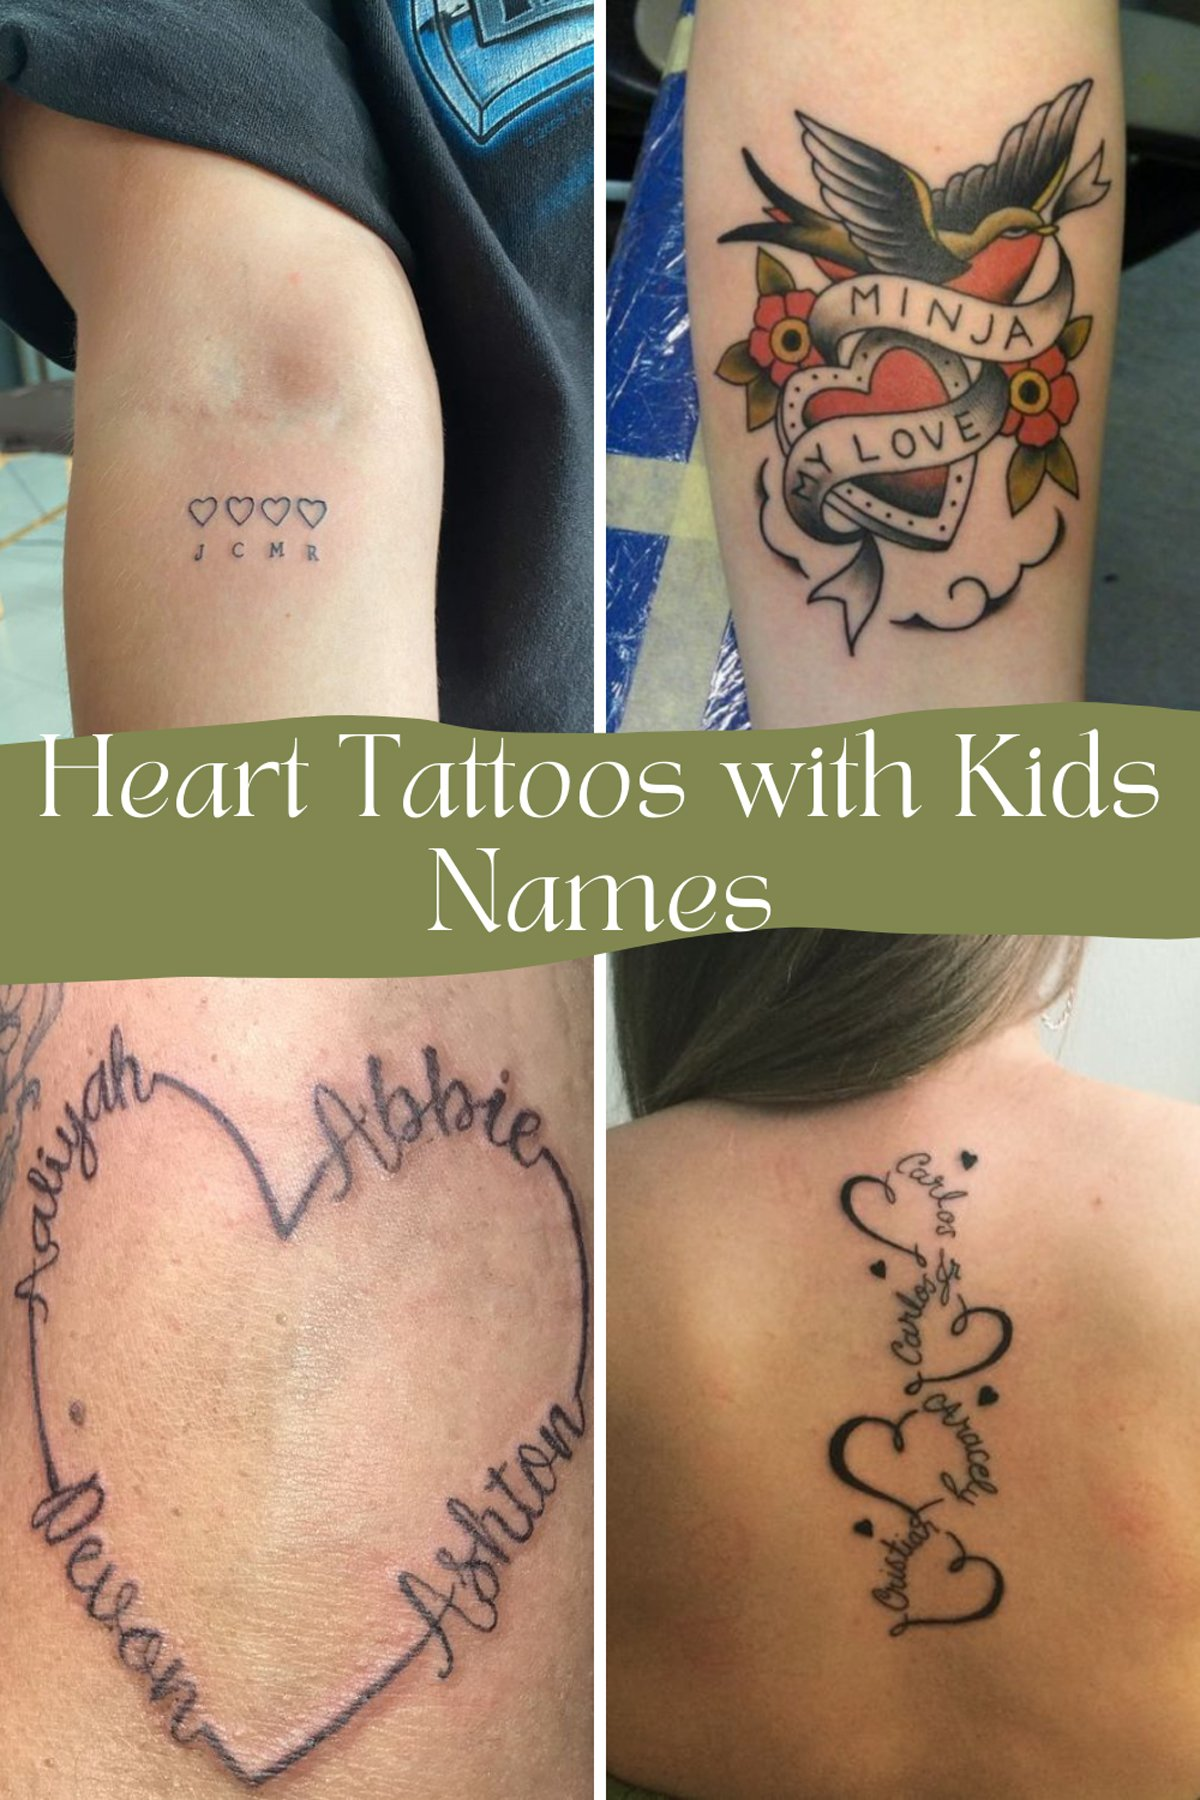 Heart Tattoos with Kids Names